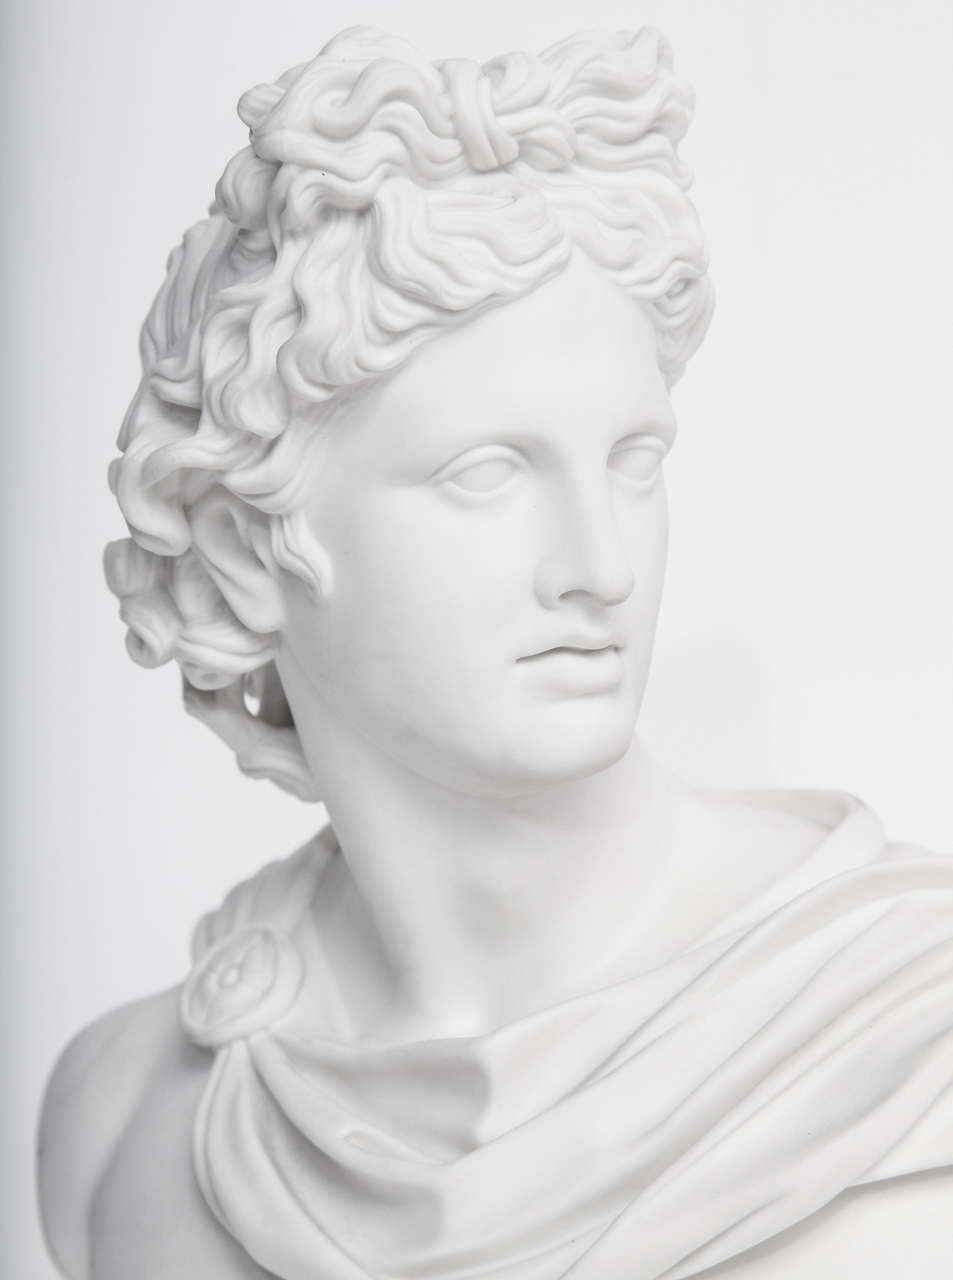 19th Century Art Union of London Bust of Apollo 3